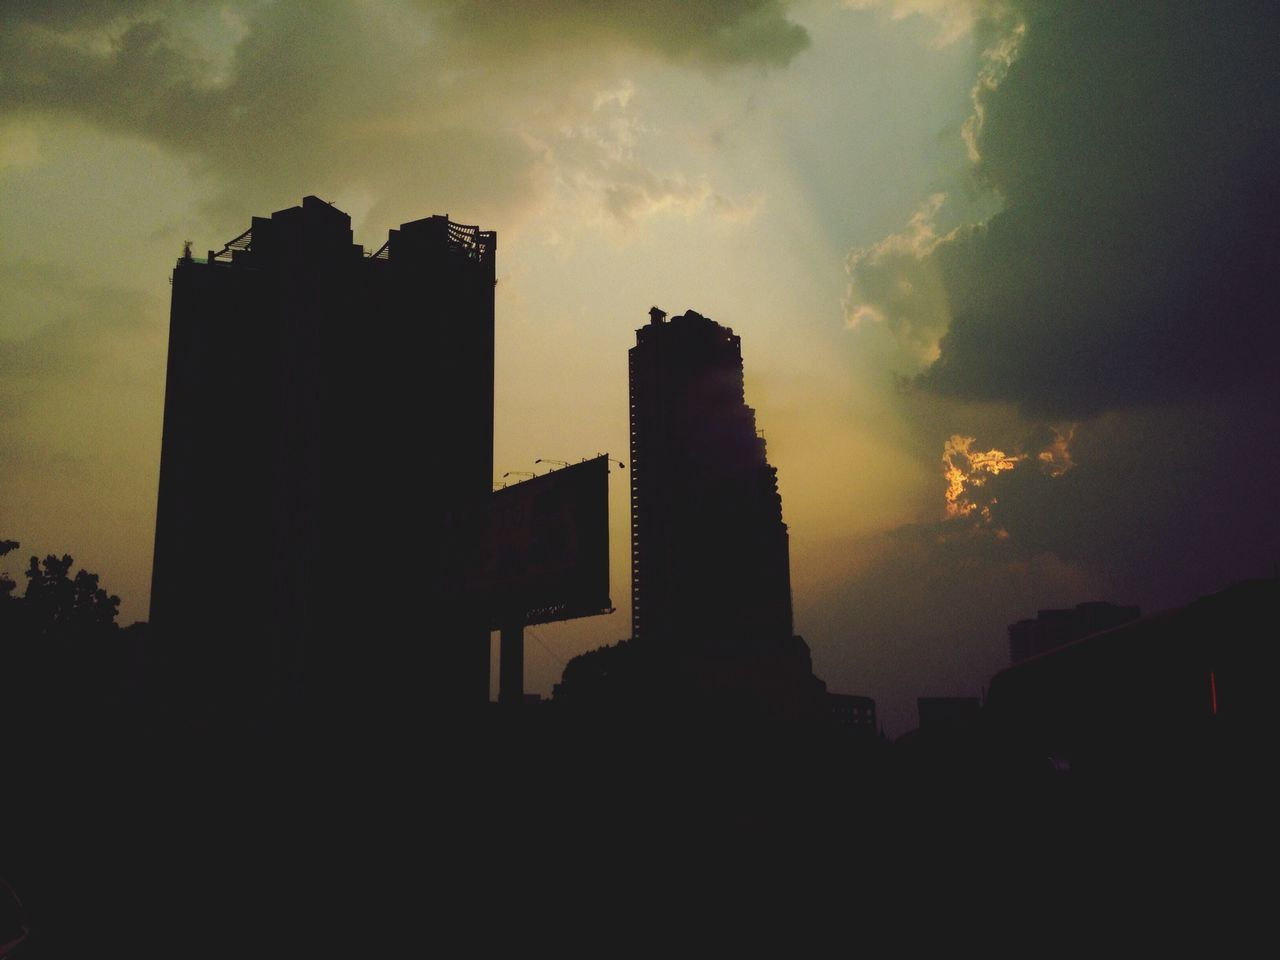 architecture, built structure, sunset, skyscraper, sky, building exterior, silhouette, city, cloud - sky, no people, outdoors, travel destinations, smoke stack, modern, factory, cityscape, day